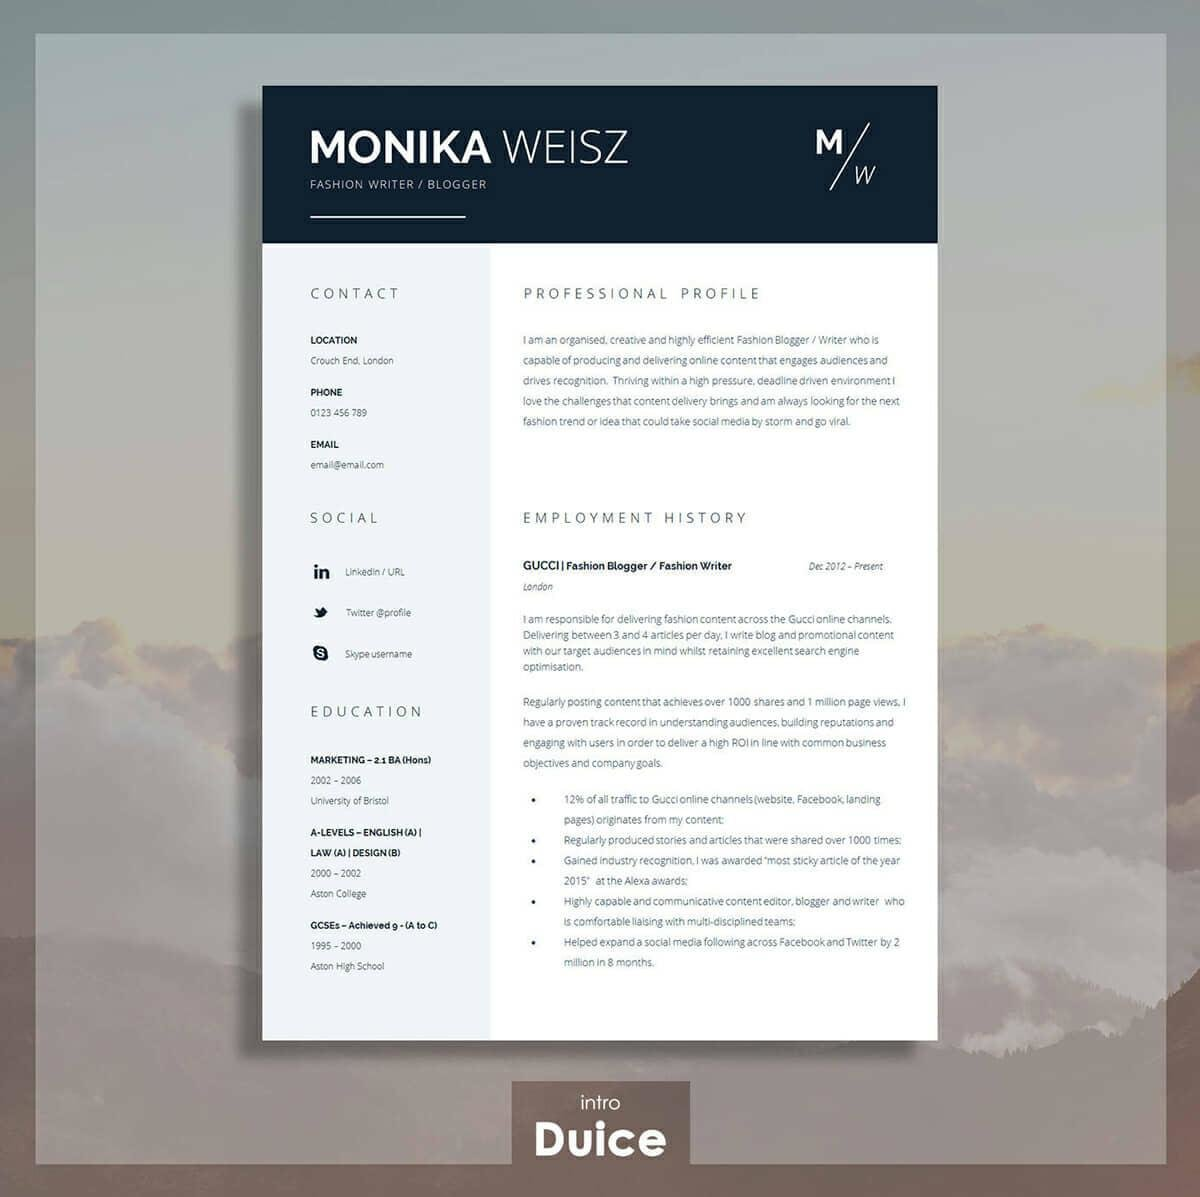 Microsoft Works Resume Builder Best Resume Templates 15 Examples To Download And Use Right